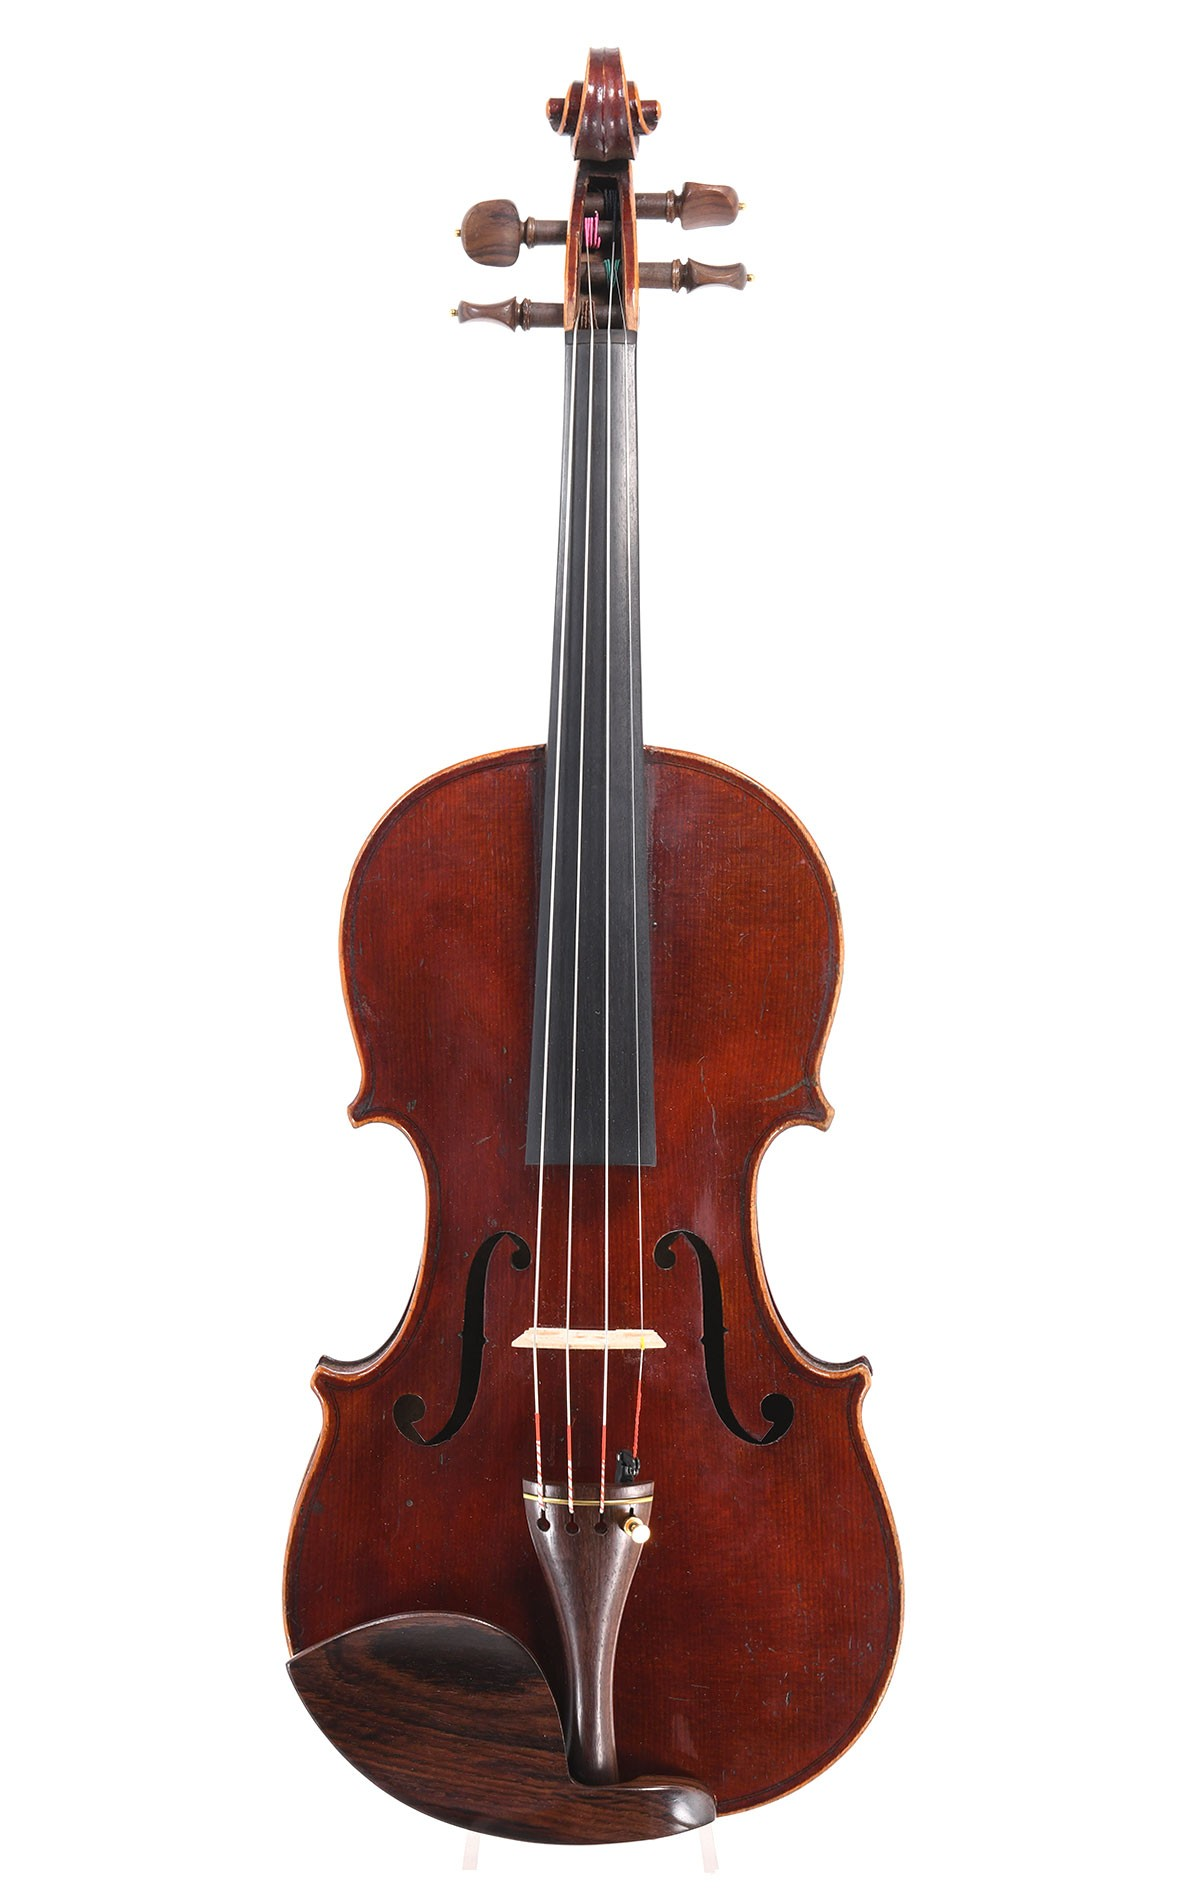 Antique French J.T.L. violin, c.1880